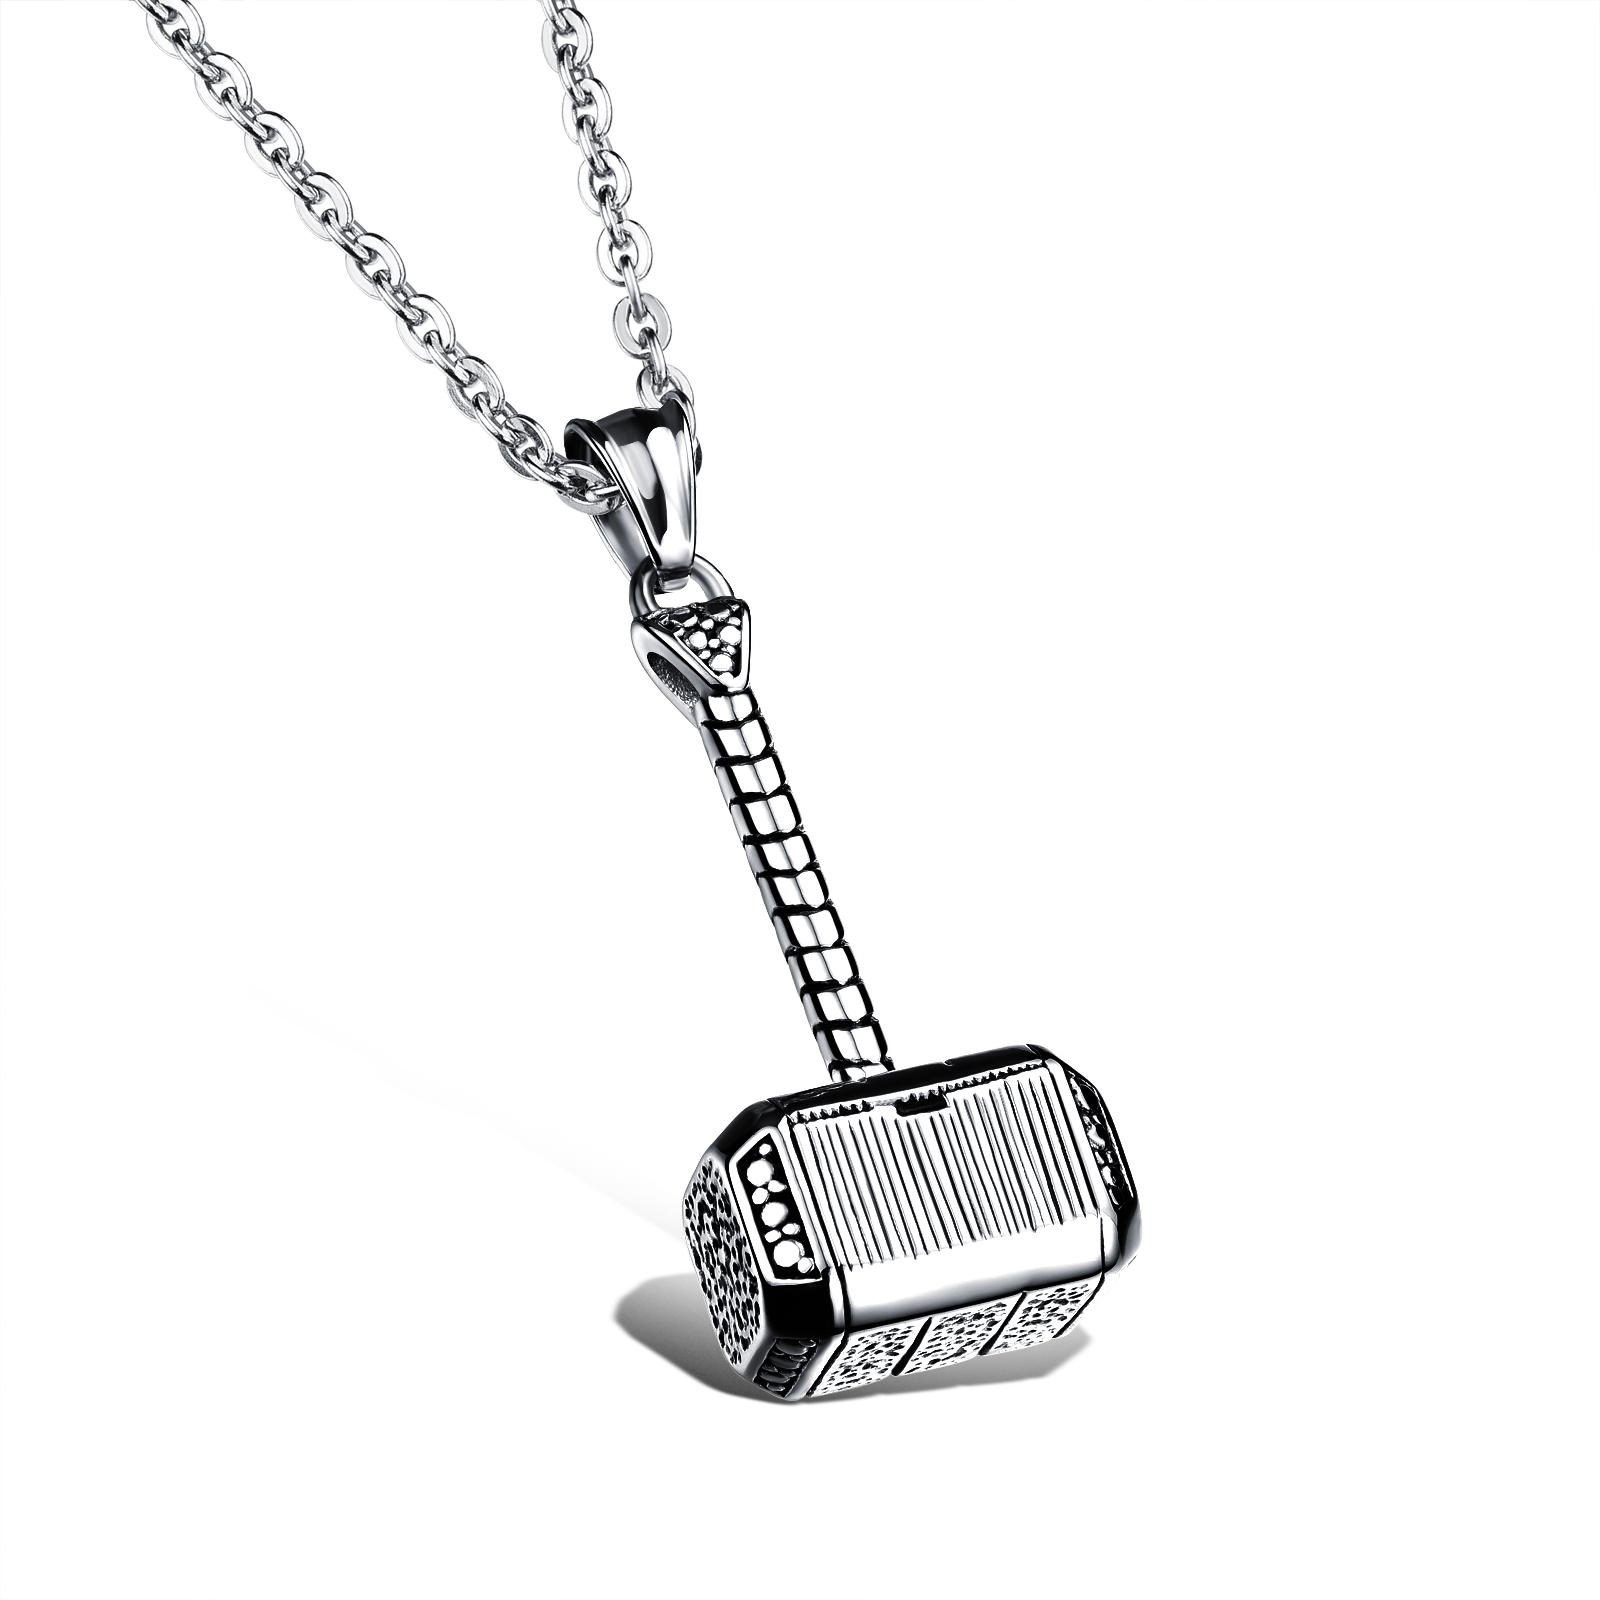 Wholesale punk fashion jewelry link chain cool Men's Stainless steel Hammer pendant necklaces decorated gift